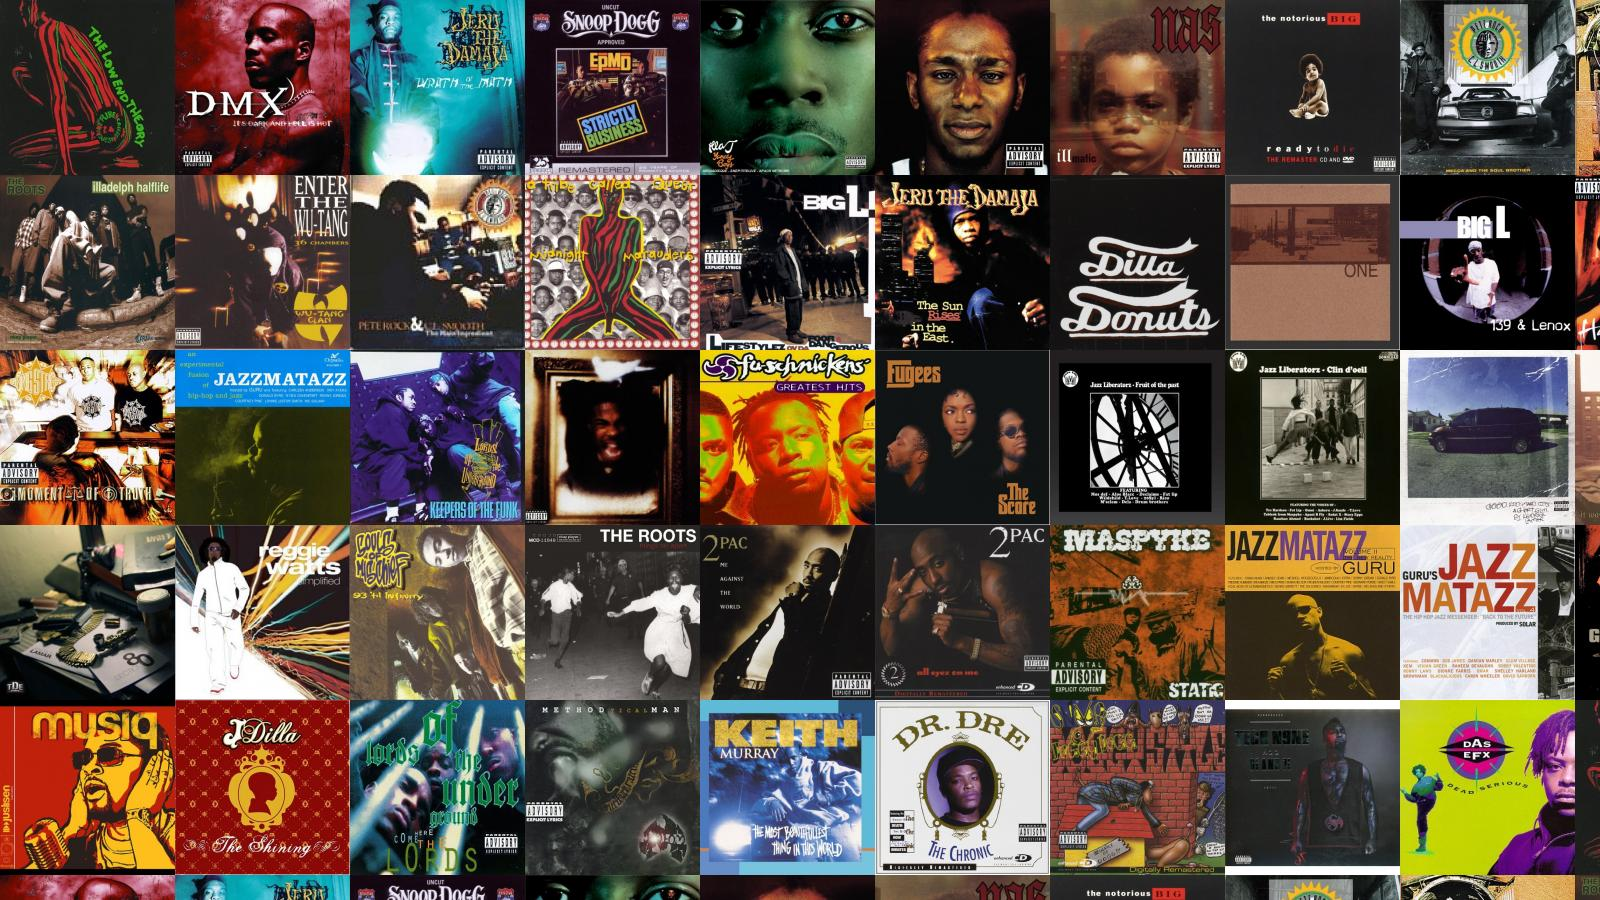 Things Fall Apart Wallpaper The Roots A Tribe Called Quest Low End Theory Dmx Wallpaper 171 Tiled